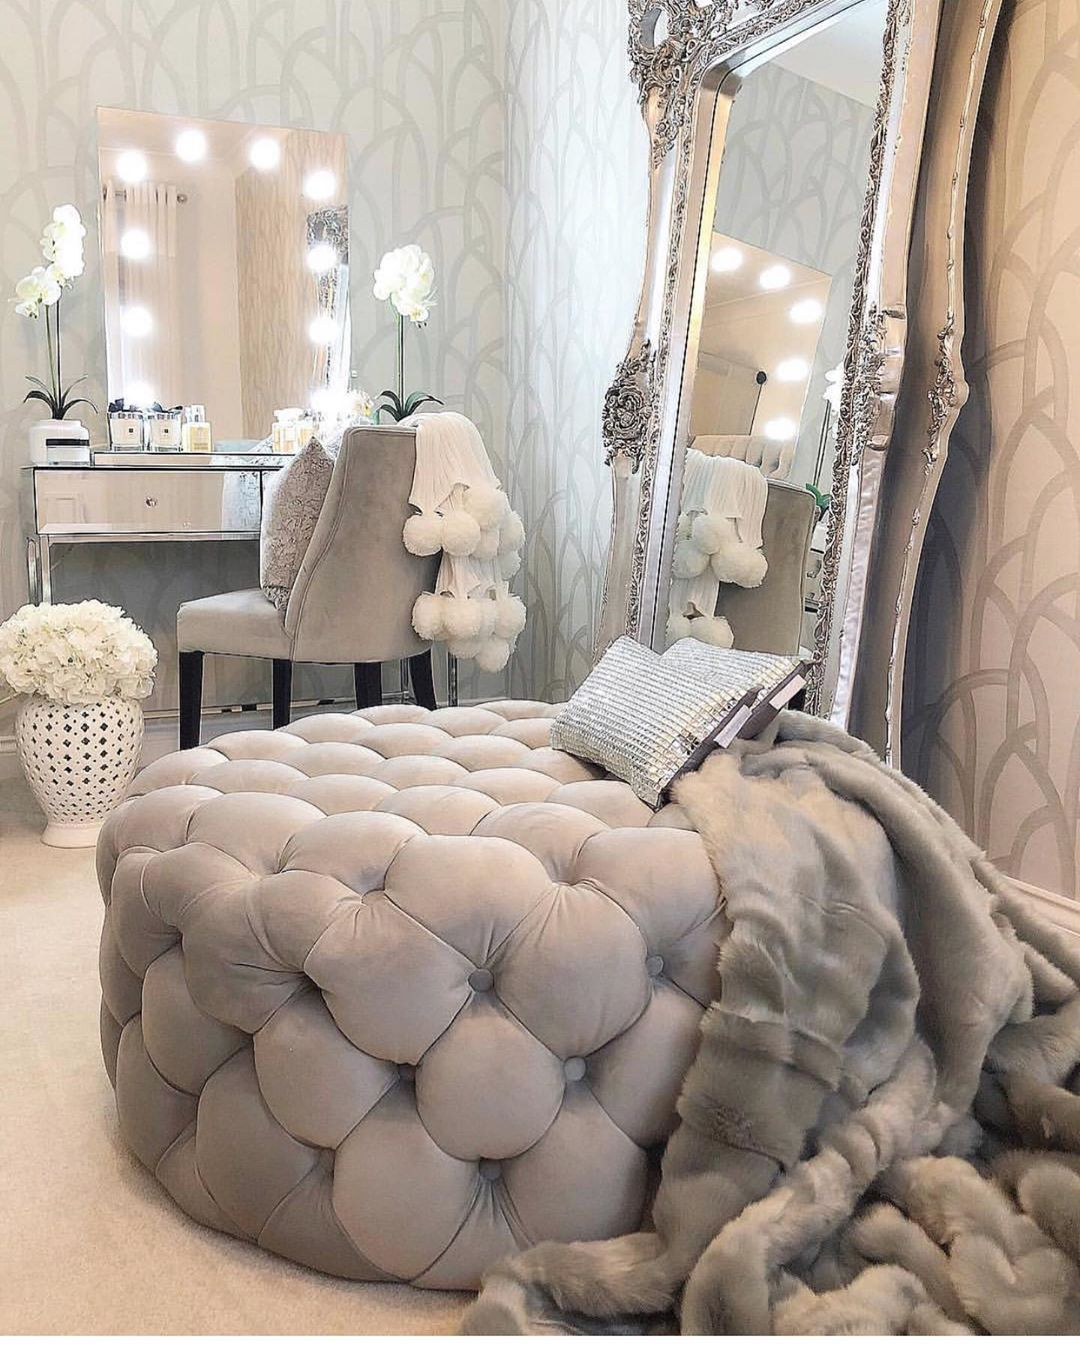 Sage On Instagram The Perfect Vanity Area Follow Glamhomedecorr For More Home Inspiration Credit Interior Design Living Room Bedroom Design Room Decor